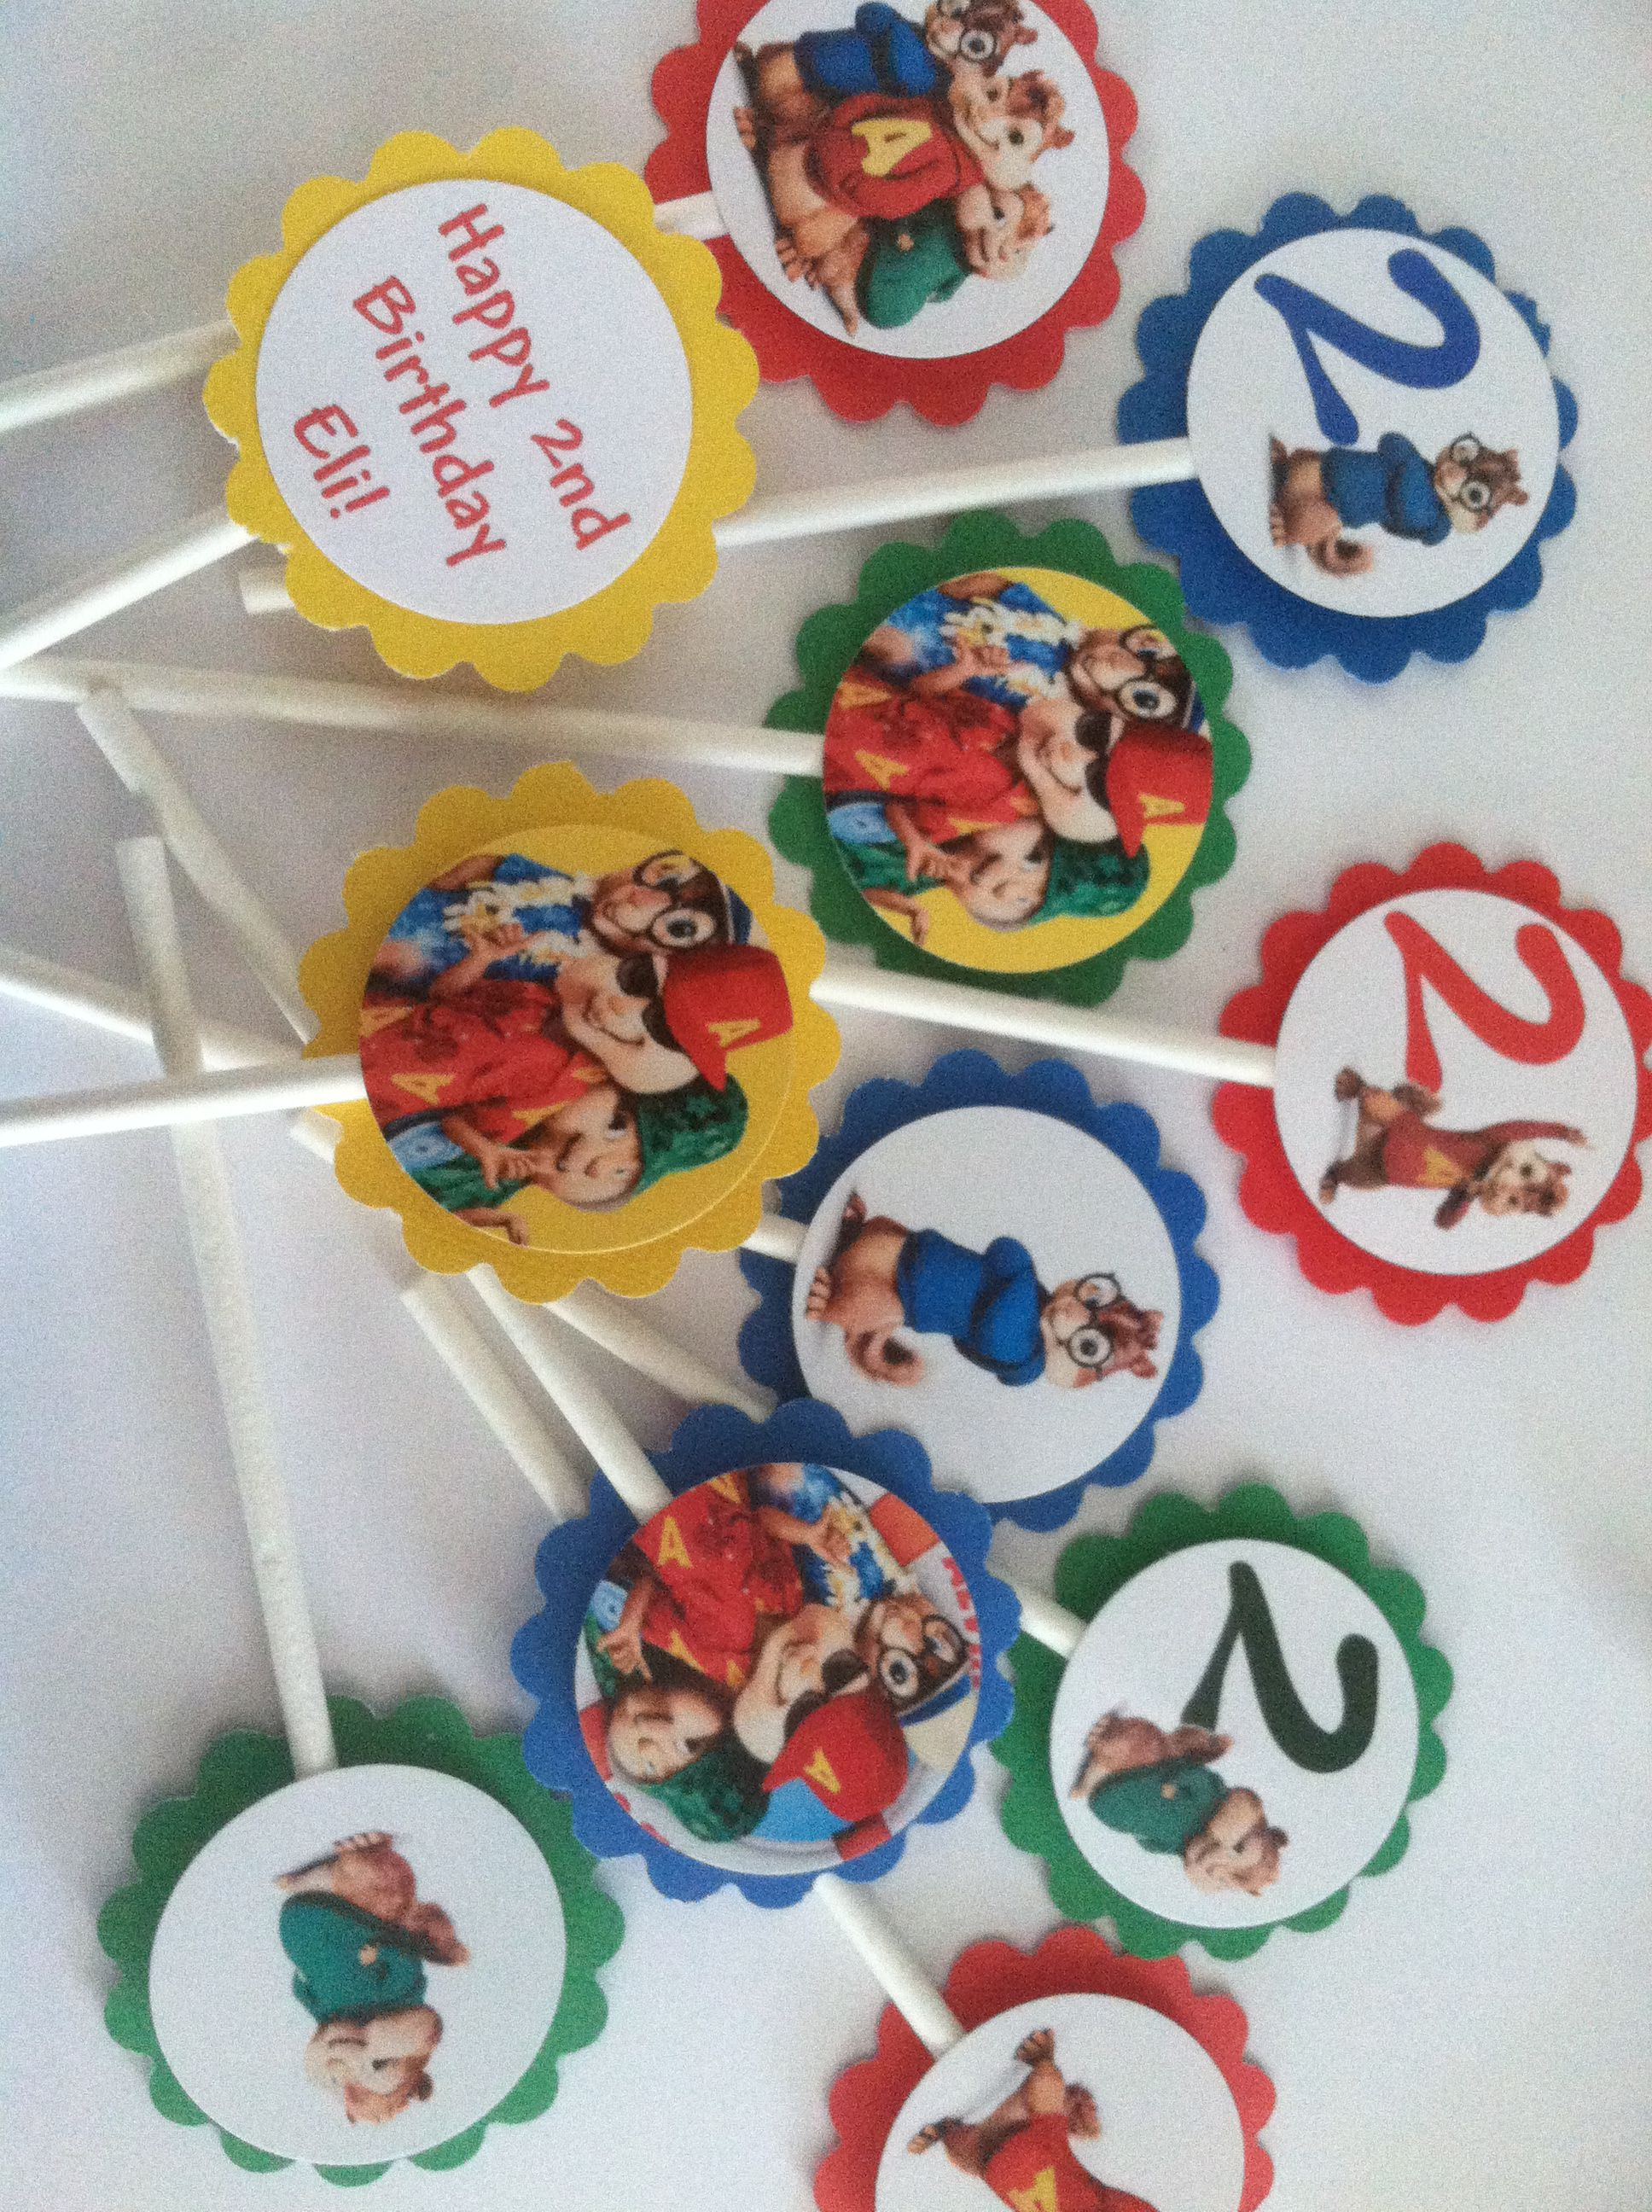 Alvin And The Chipmunks Cupcake Toppers Birthday Party Idea Favors Decorations 12 For 500